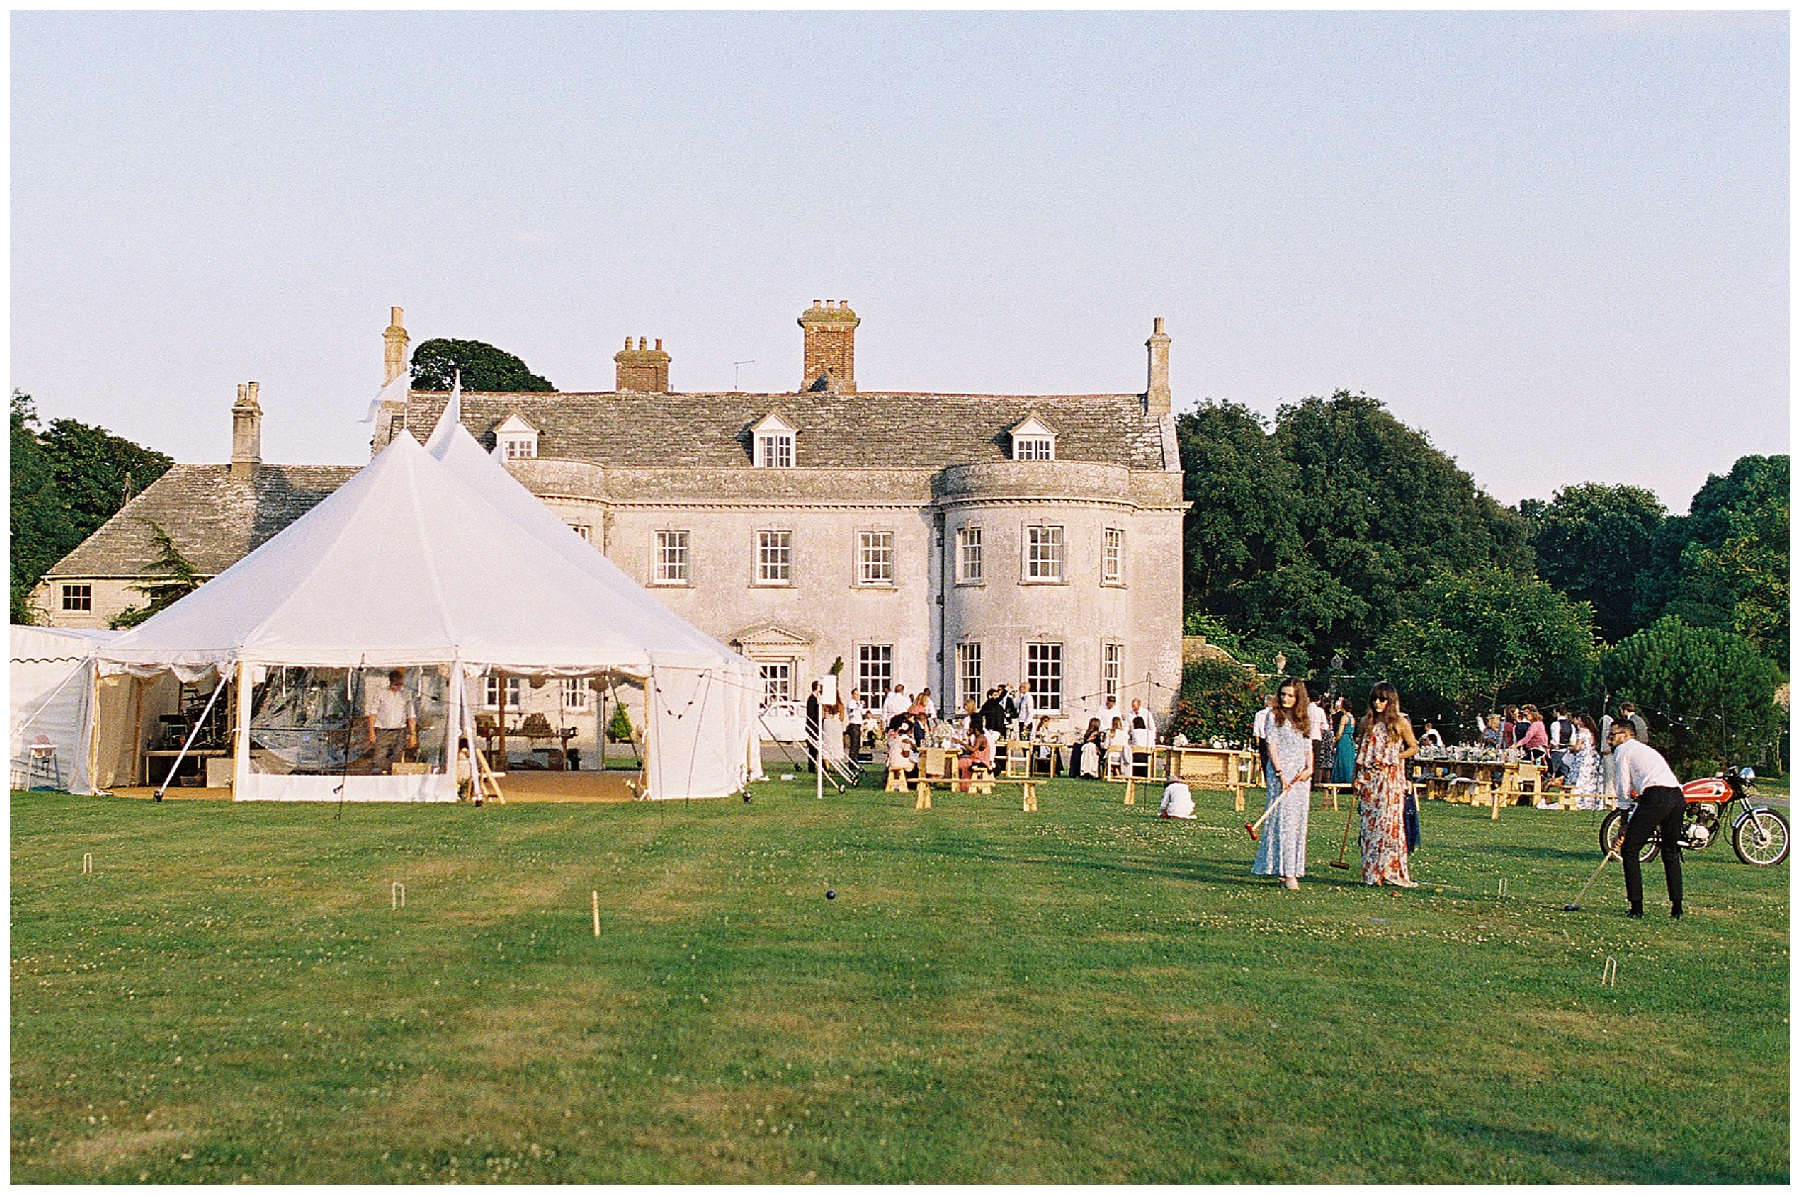 smedmore house, dorset wedding venue